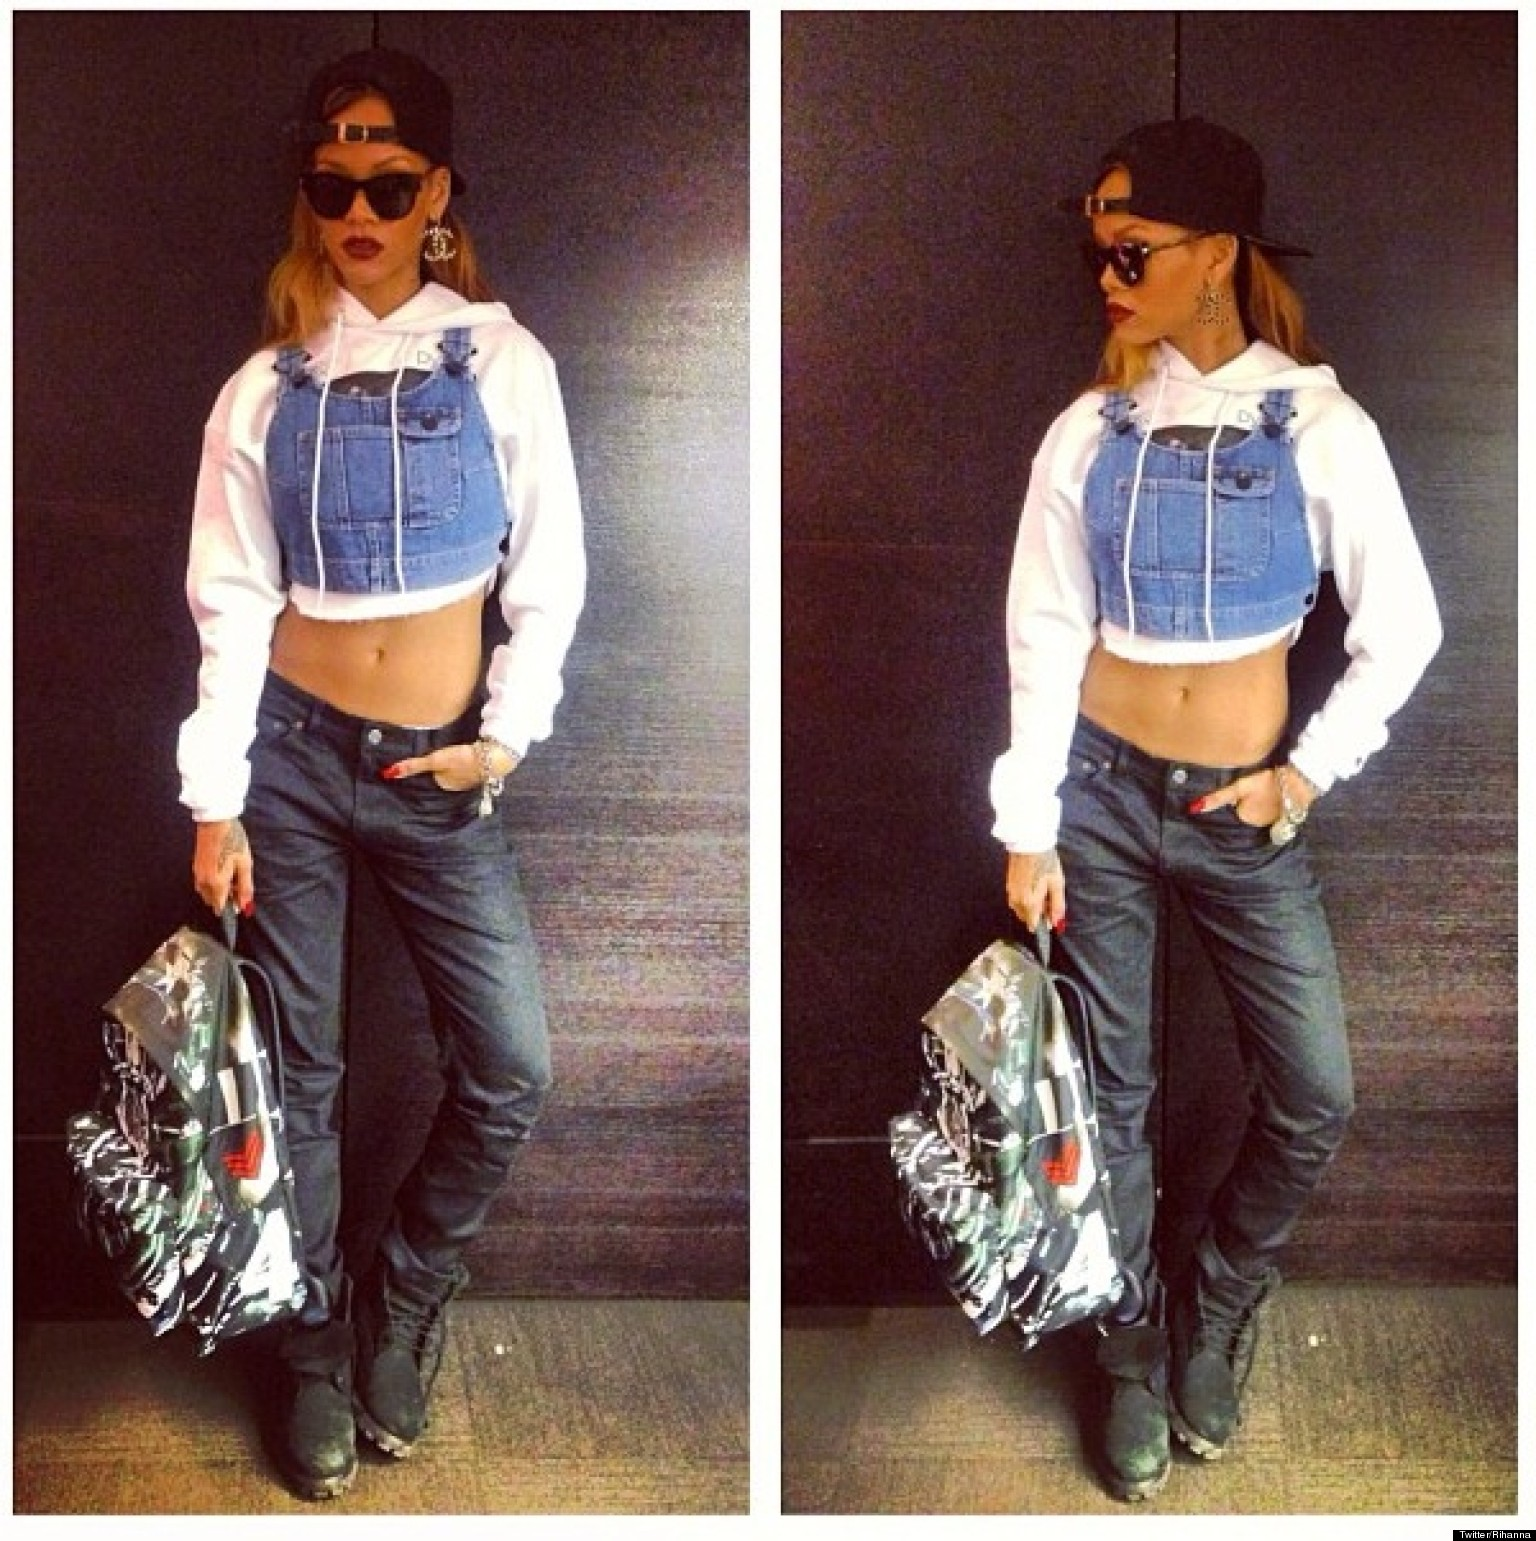 Rihanna Is 'Rockin' Dat' For River Island